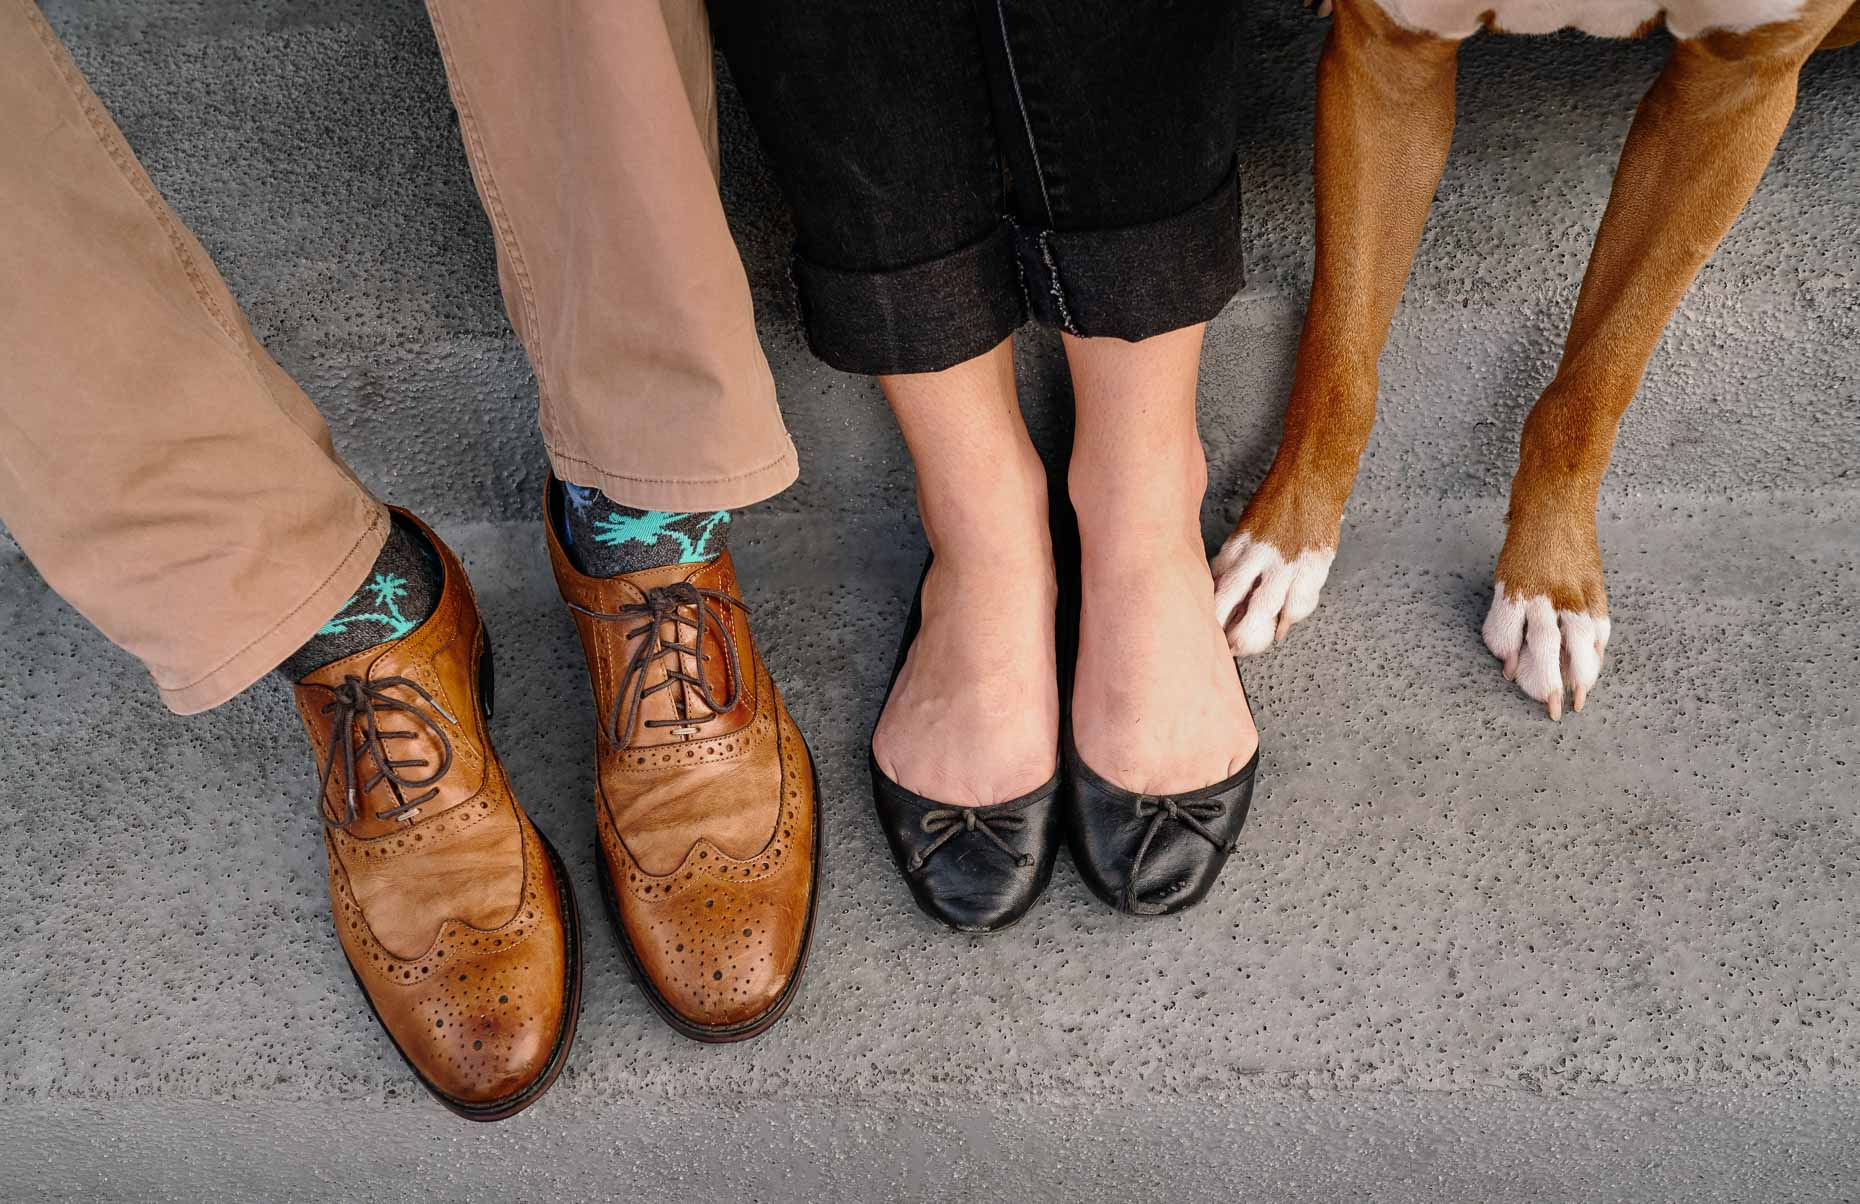 The-feet-of-a-couple-and-their-dog